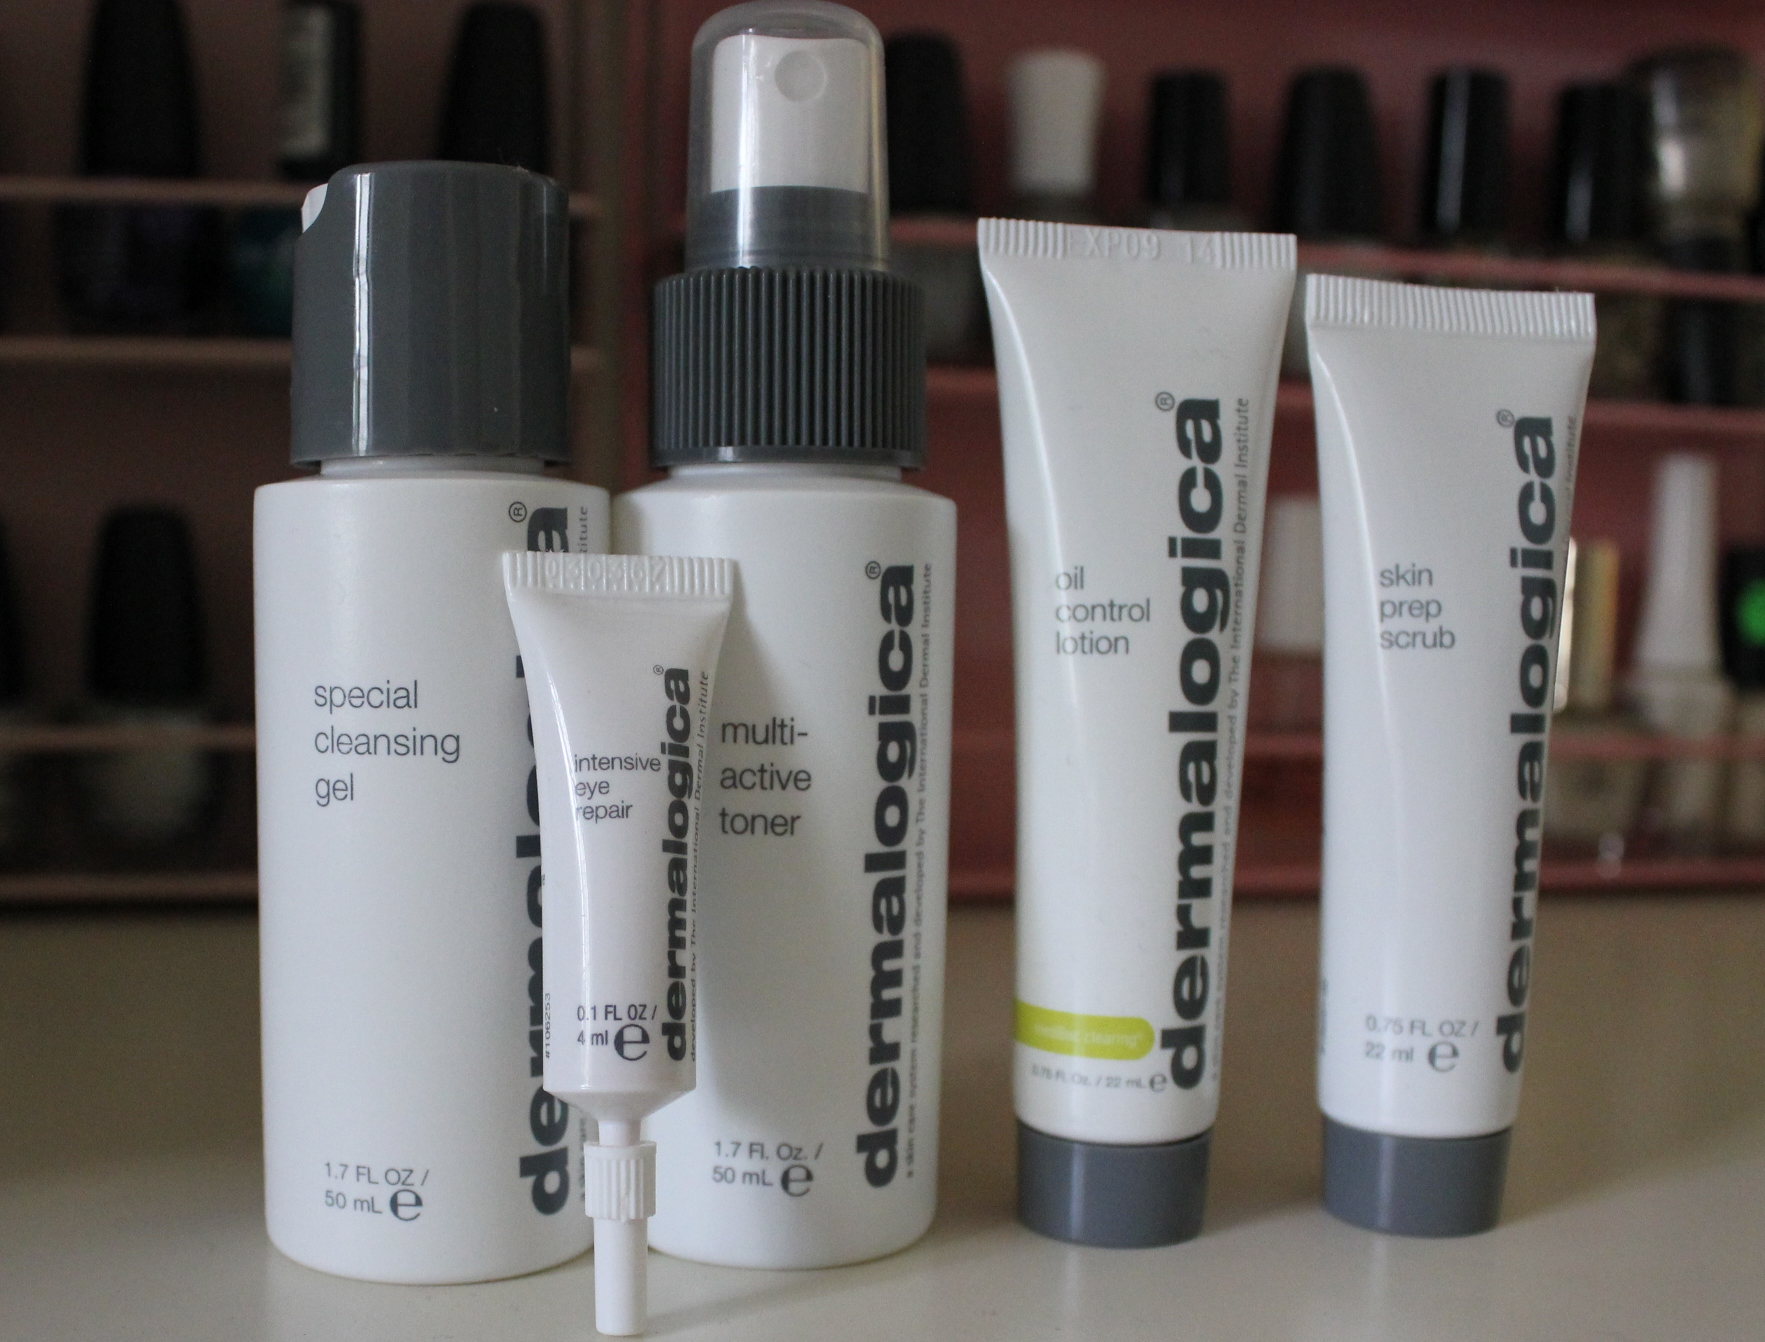 Dermalogica Our Favorites 5 Piece Kit uploaded by Christine L.